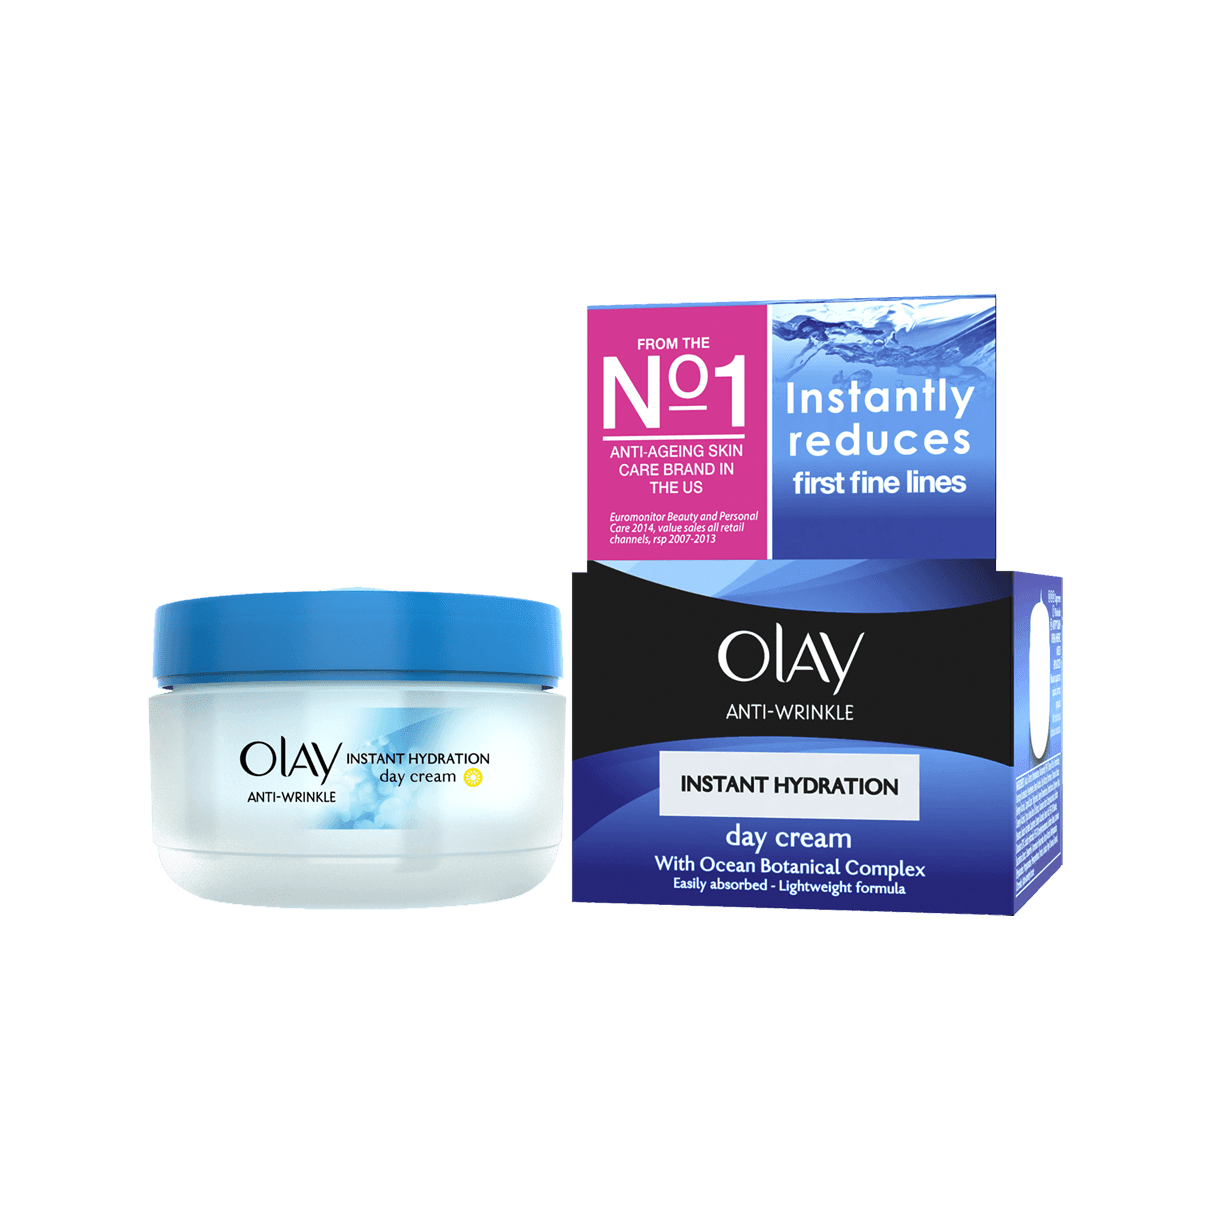 Anti-Wrinkle Instant Hydration Day Cream